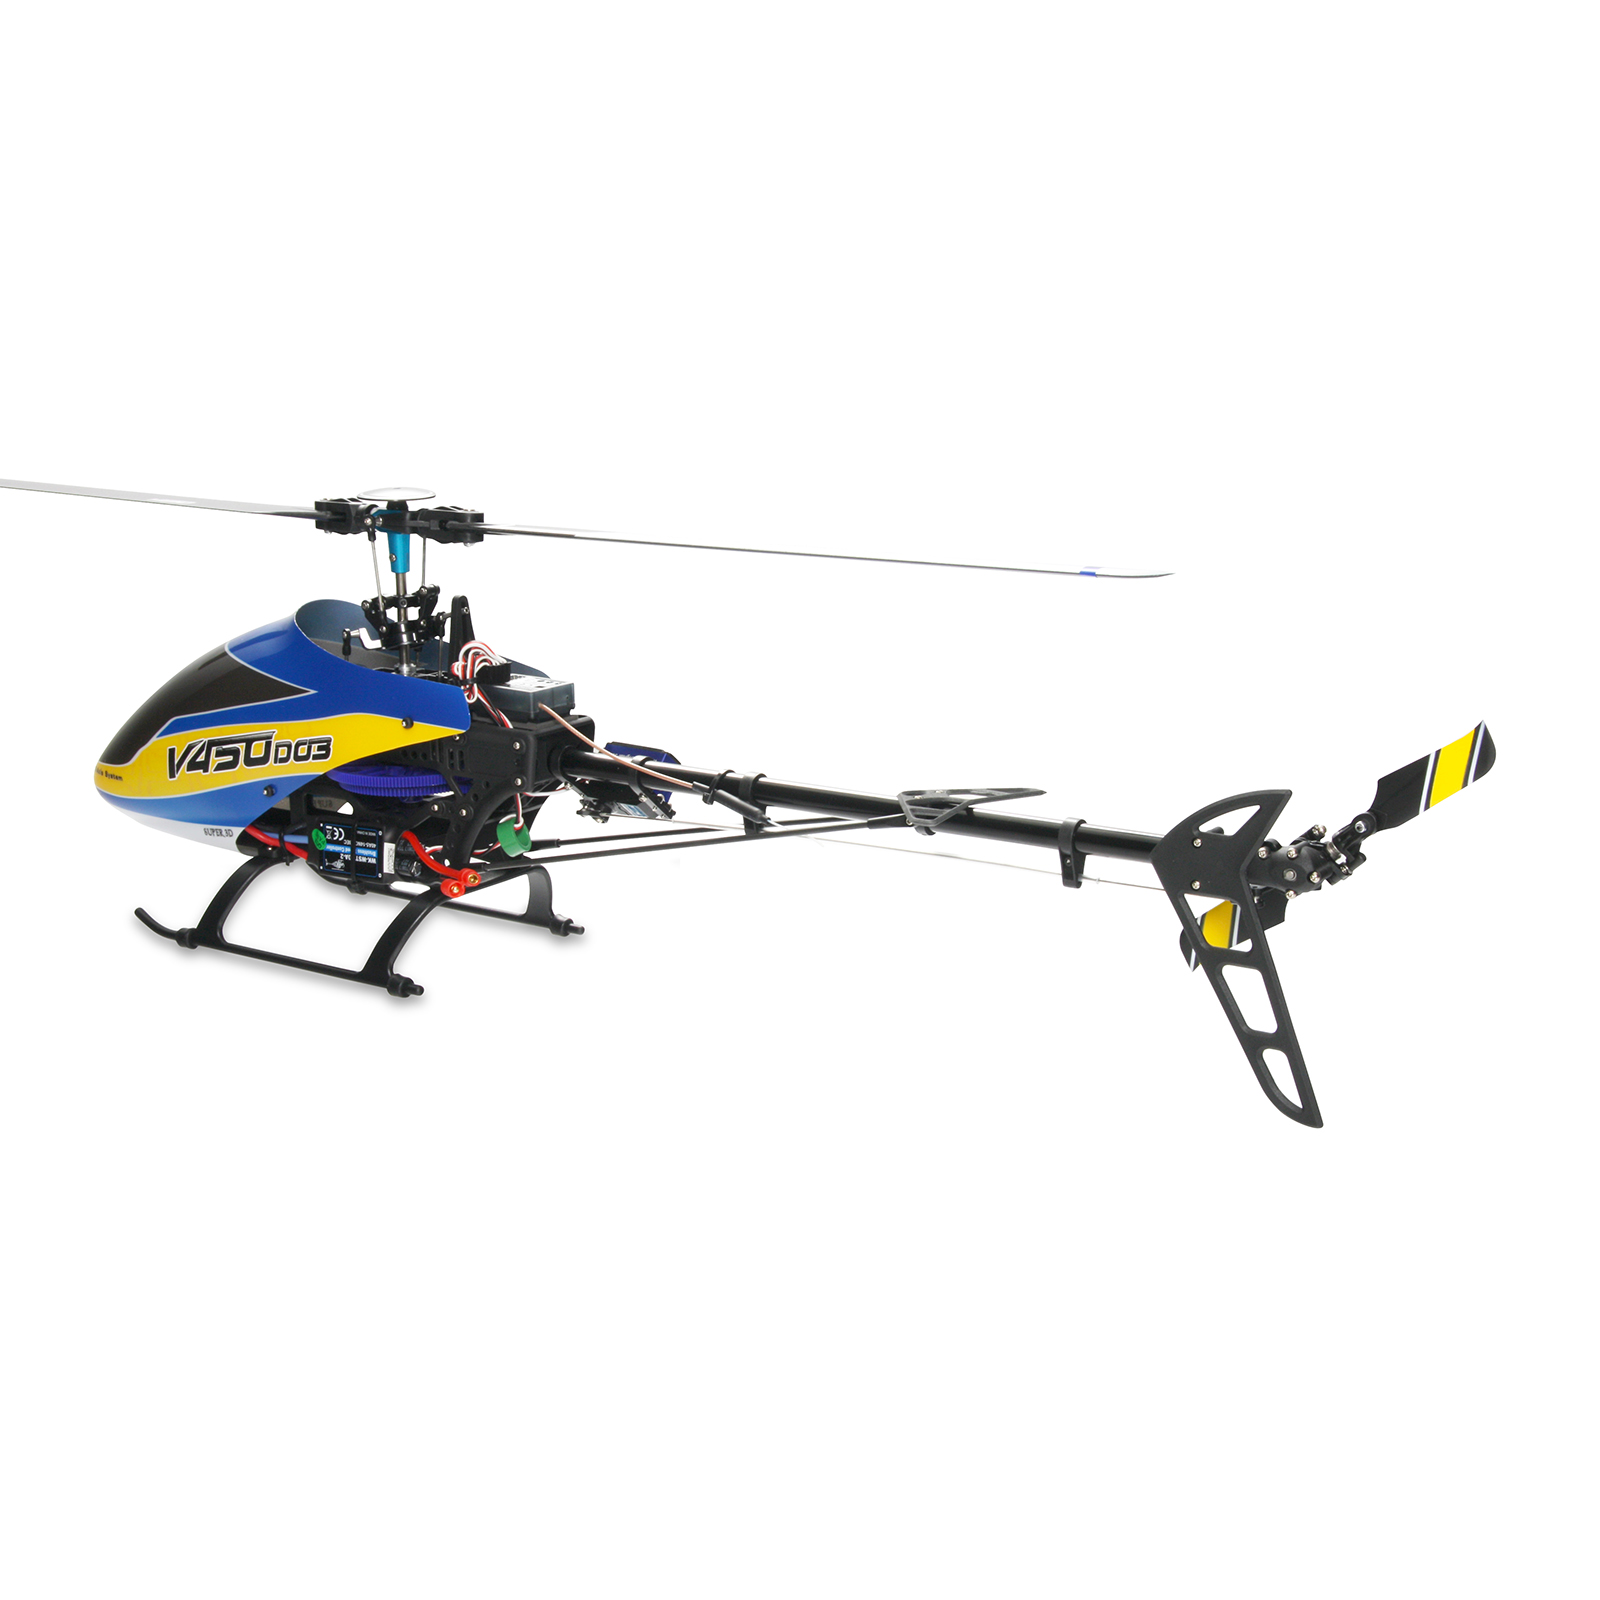 Walkera V450d03 M2 Rc Helicopter Mode 2 At Hobby Warehouse